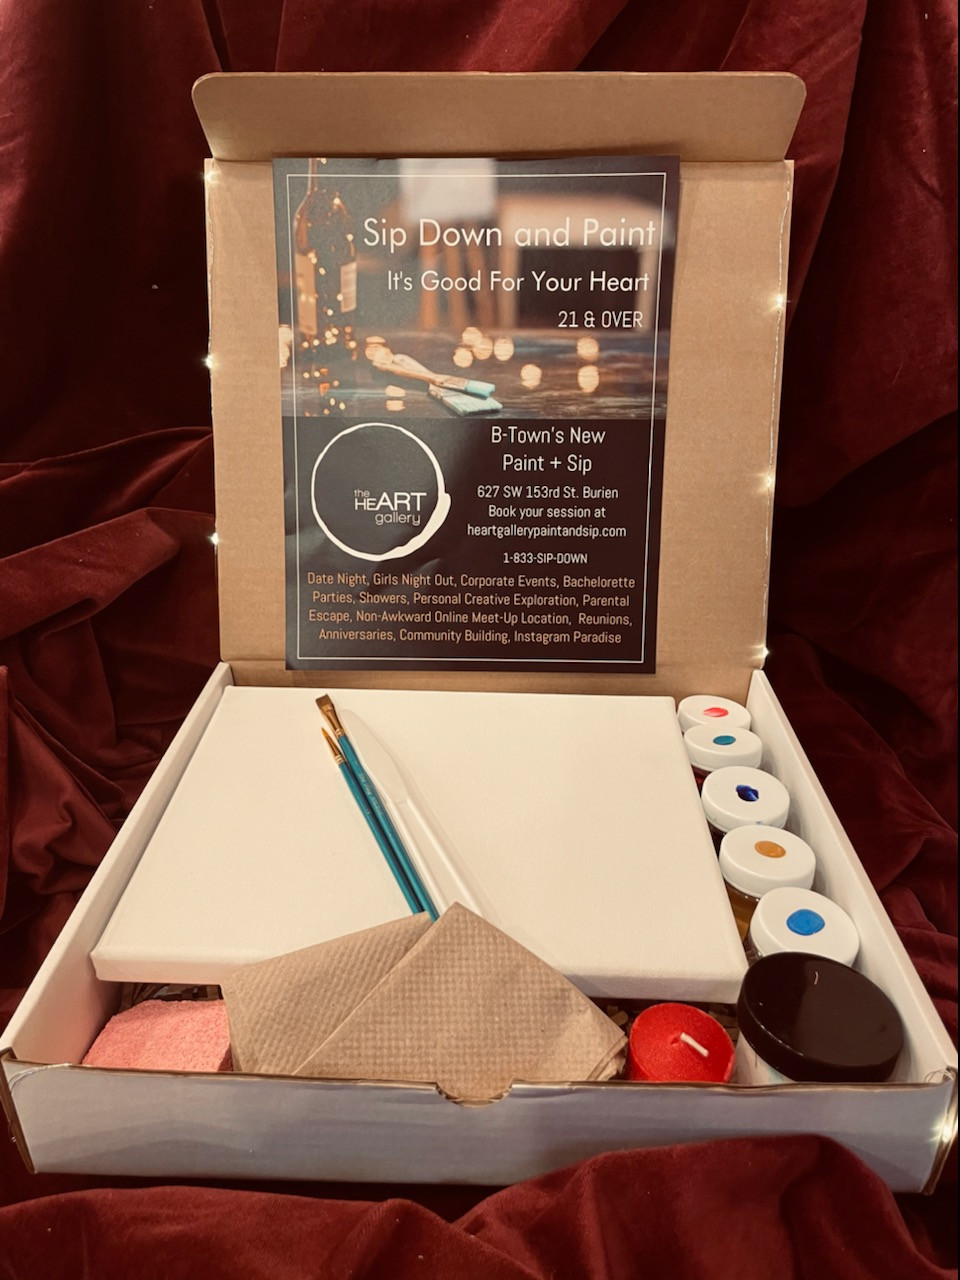 Grab a to-go-kit at The Heart Gallery Paint and Sip in Burien